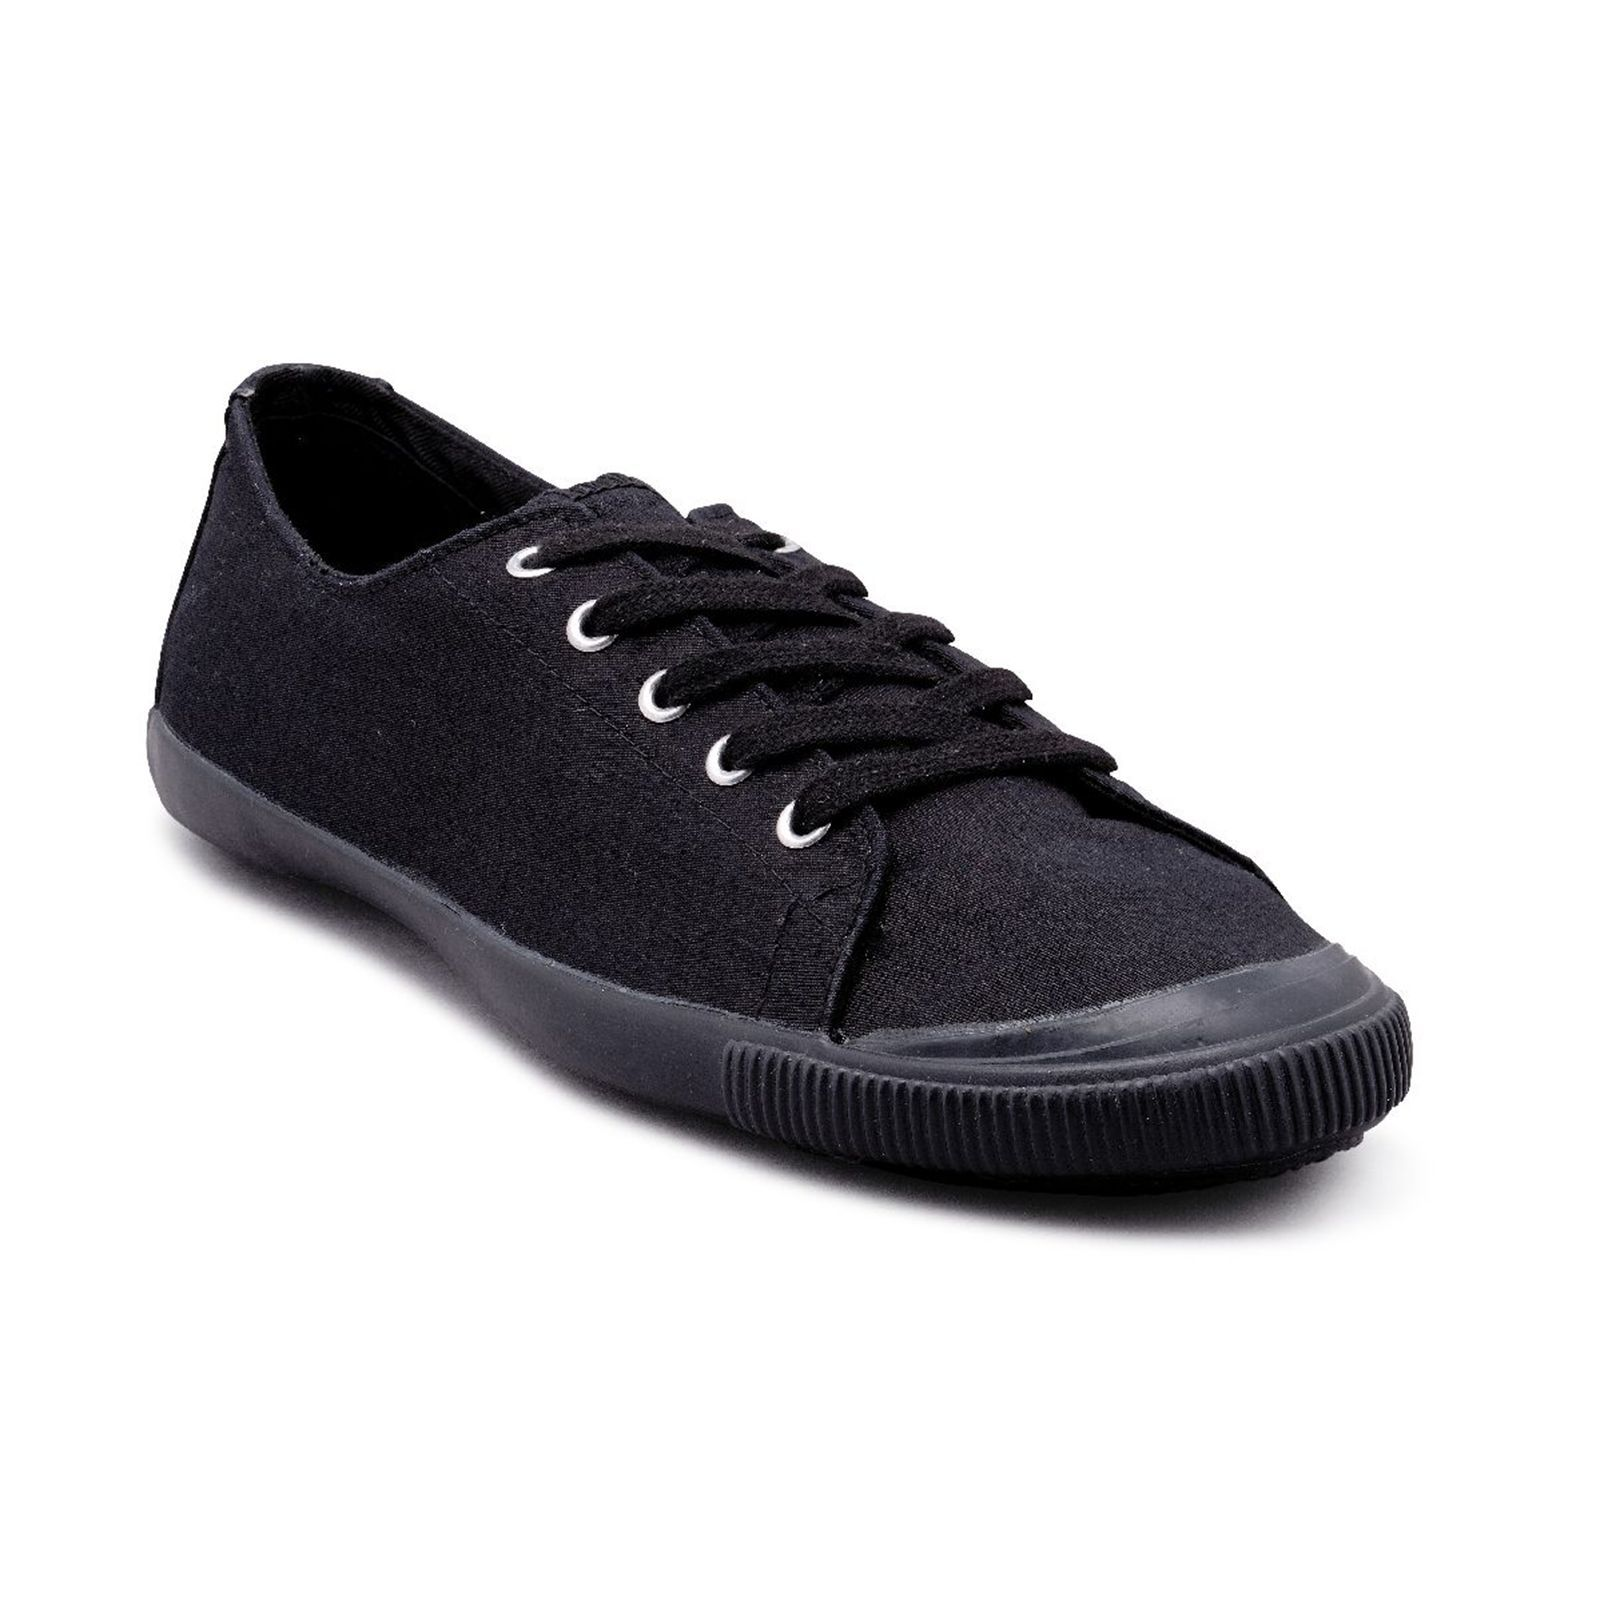 Peopleswalk Game Pure - Baskets Mode - noires